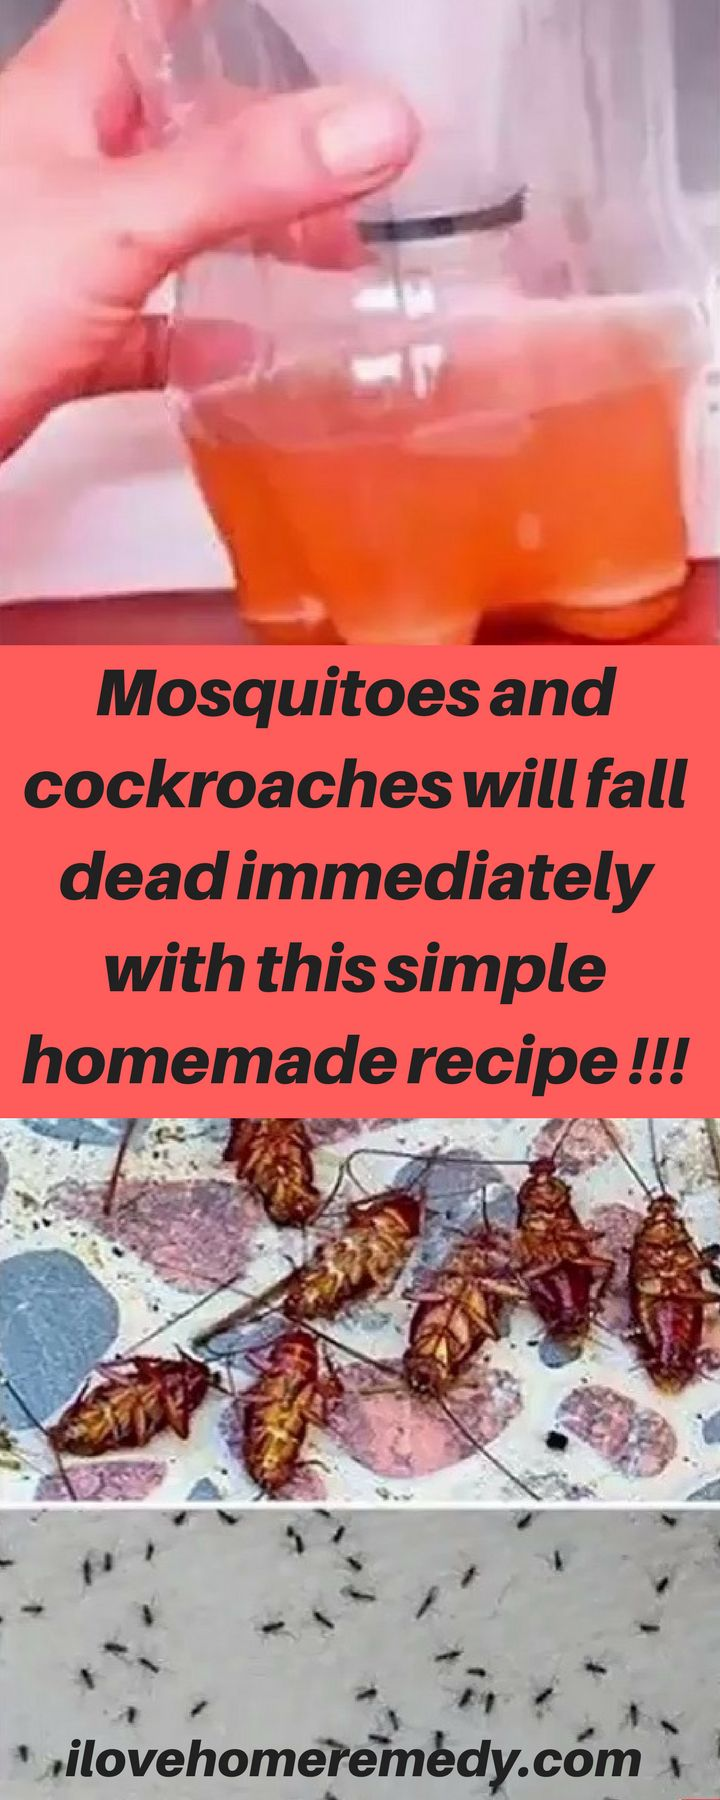 Mosquitoes and cockroaches will fall dead immediately with this simple homemade recipe !!!